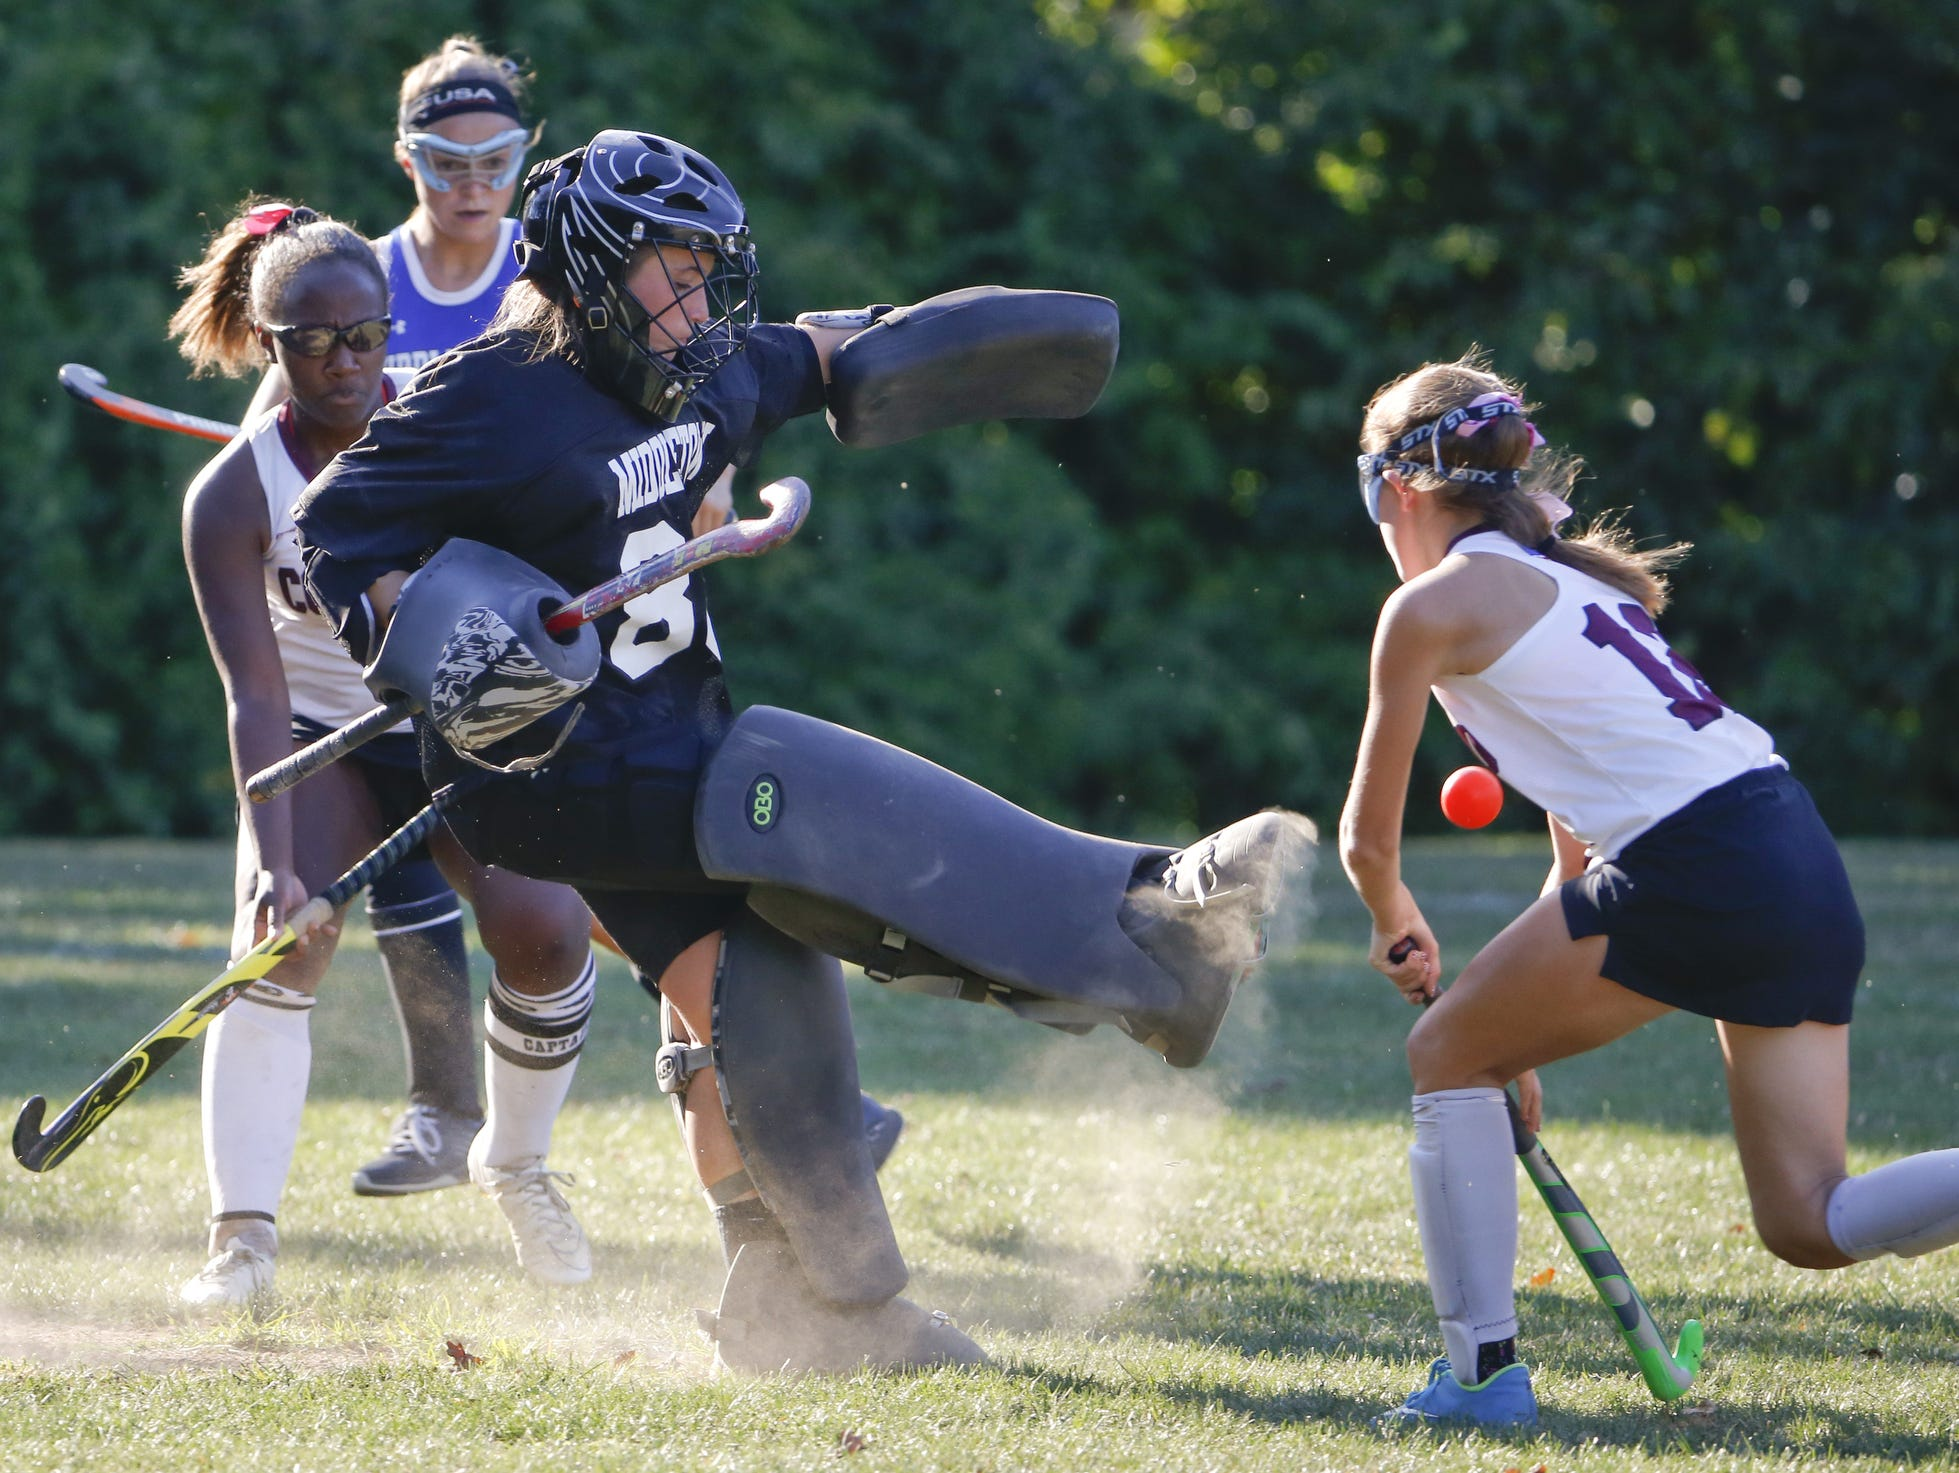 Middletown goalie Lauren Berry clears the ball away from Concord's Katie Raab (right) in the second half of Concord's 1-0 win Wednesday.